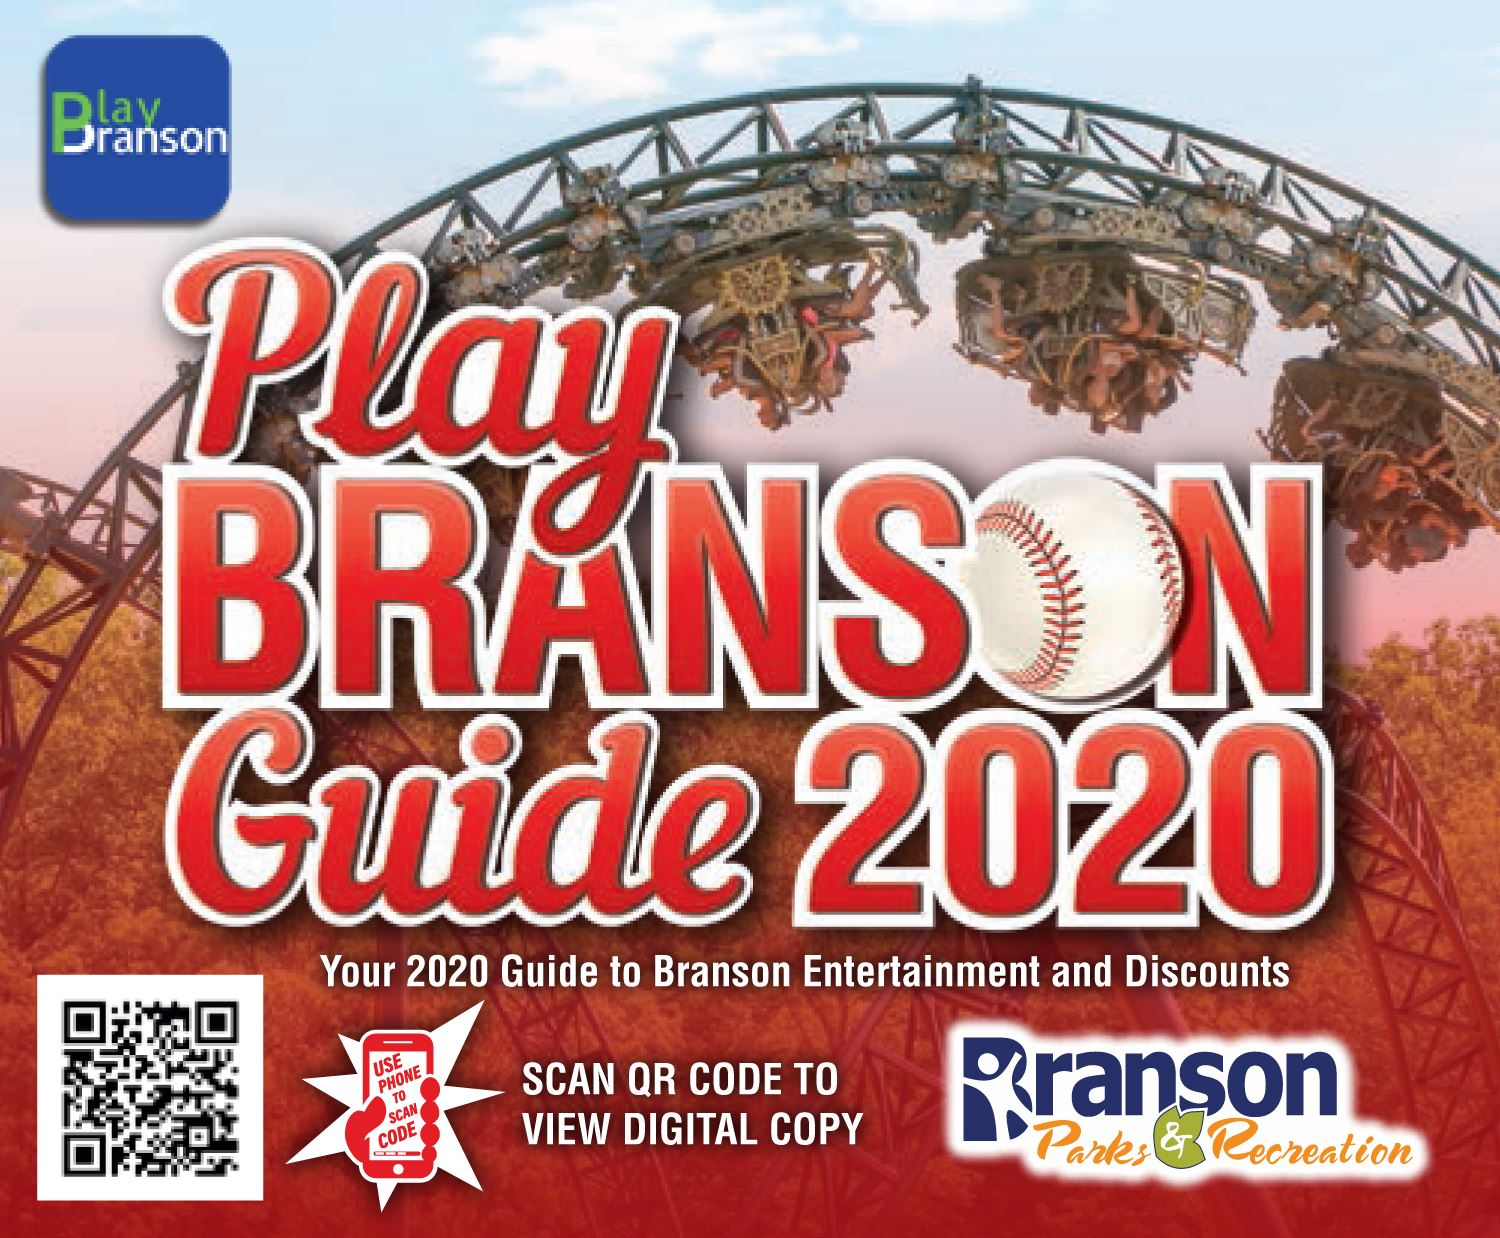 Play Branson Guide 2020